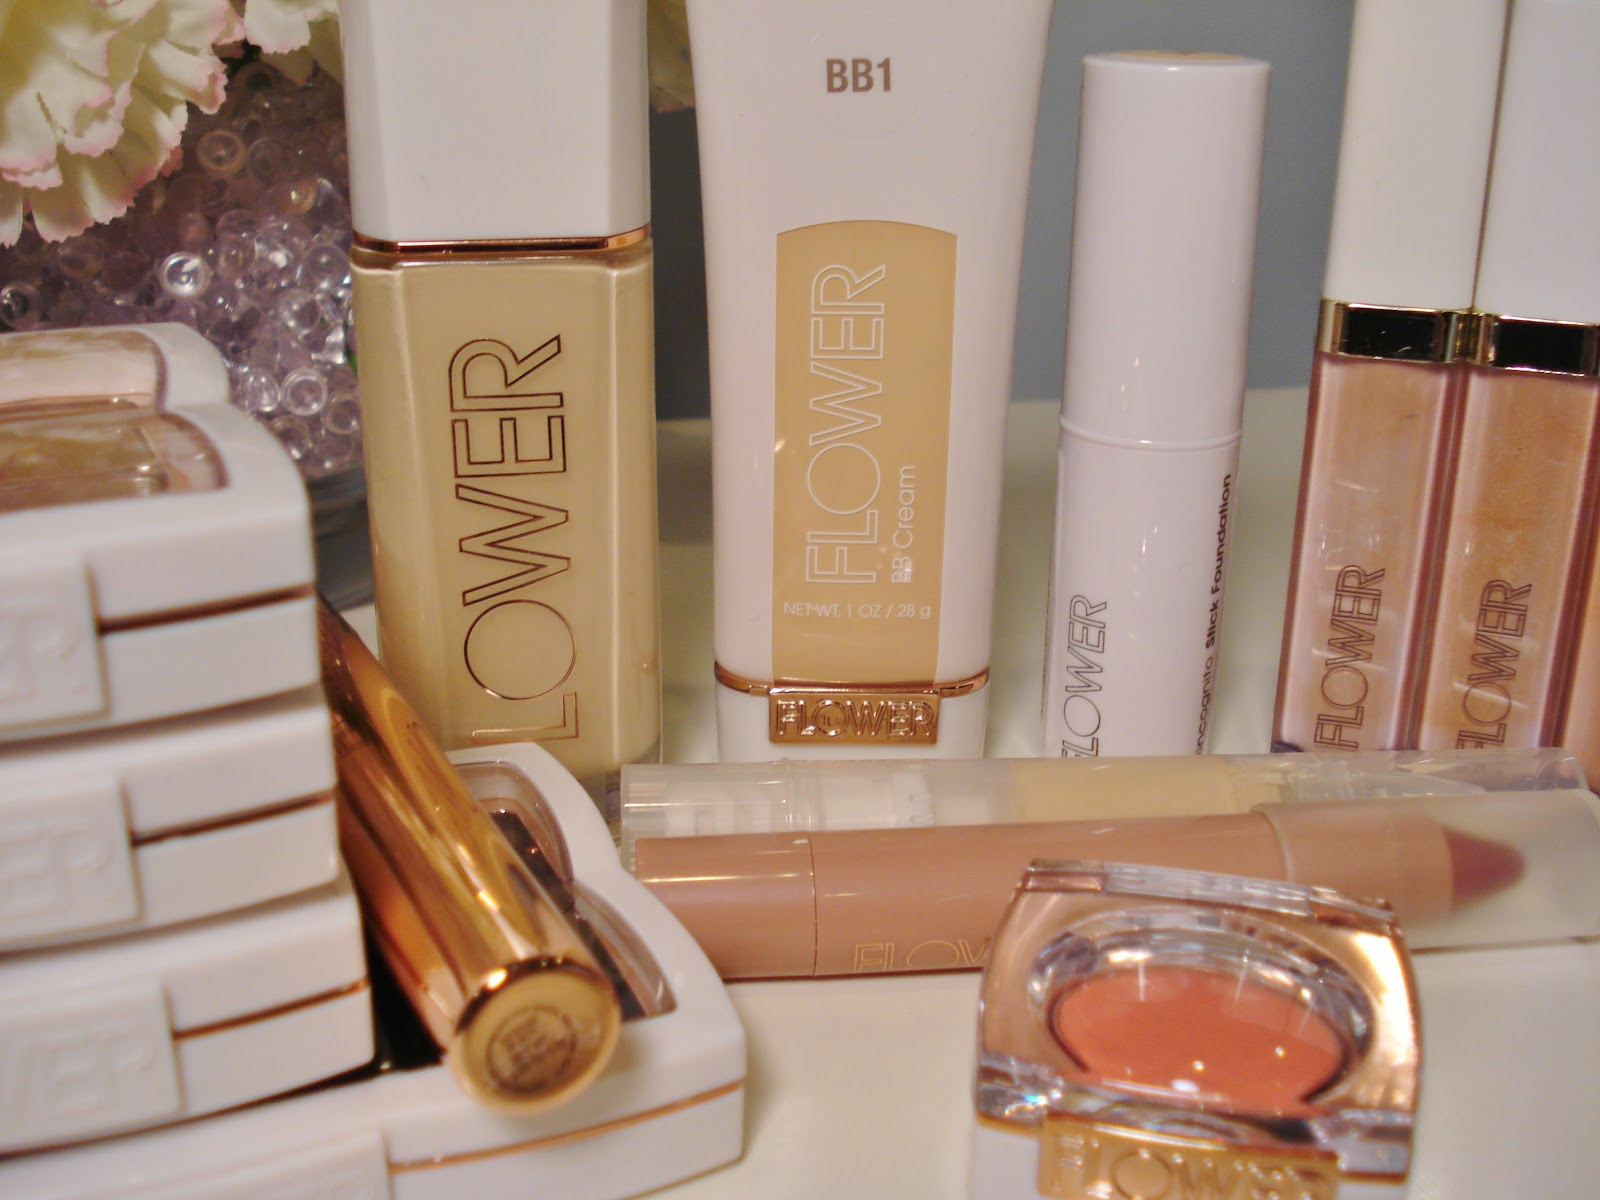 Flower beauty from drew barrymore first impressions makeupwednesday today i am going to be doing a first impressions post of a new makeup line from drew barrymore called flower beauty now i said i was going on a no buy but izmirmasajfo